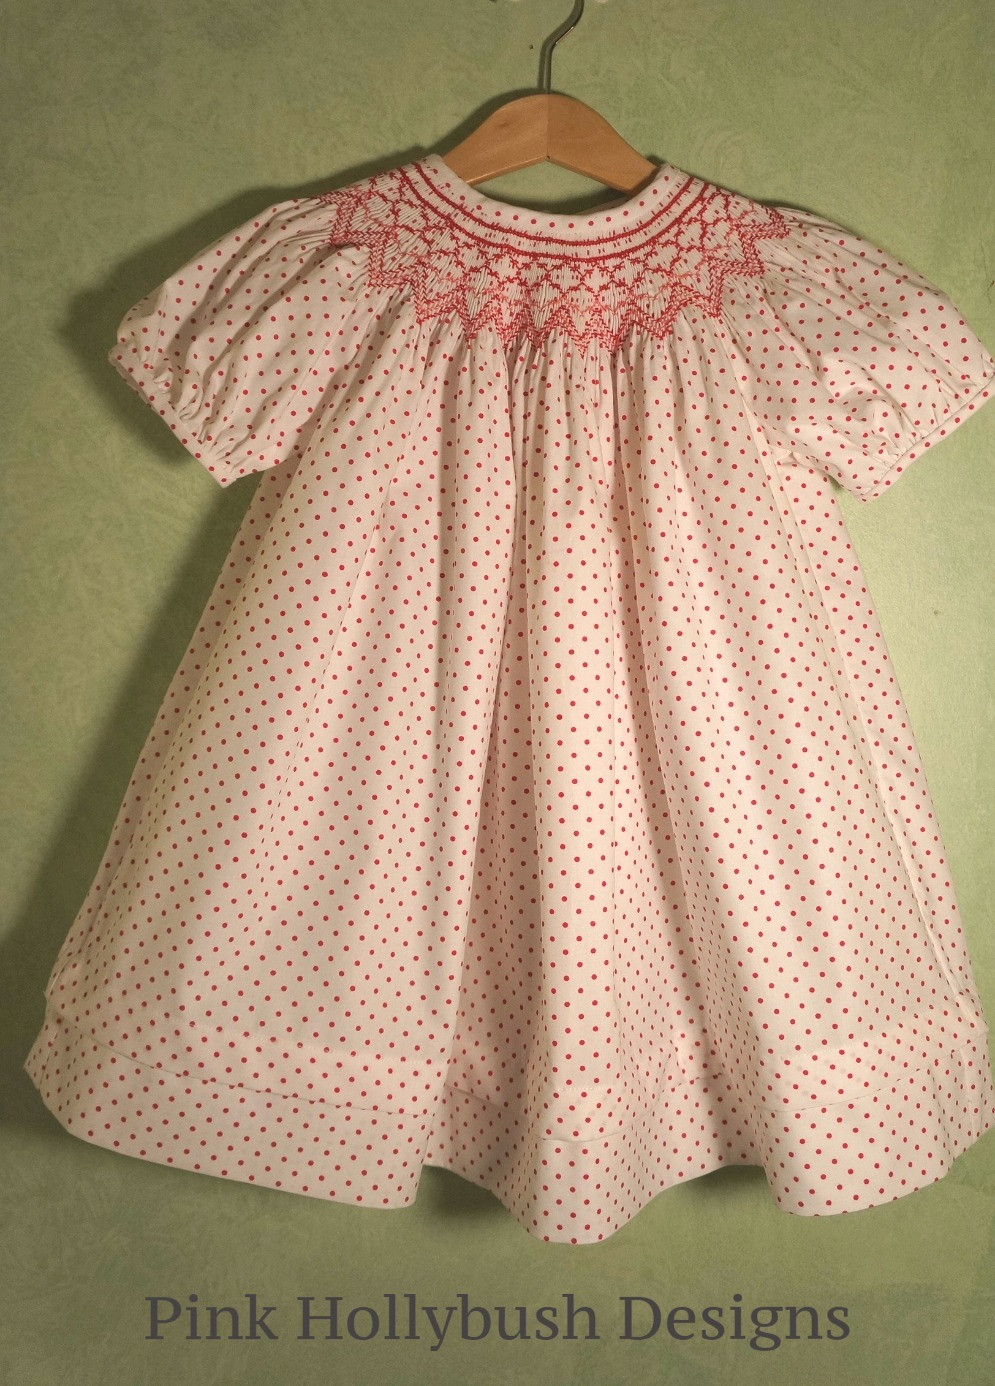 Daisy free smocking plate